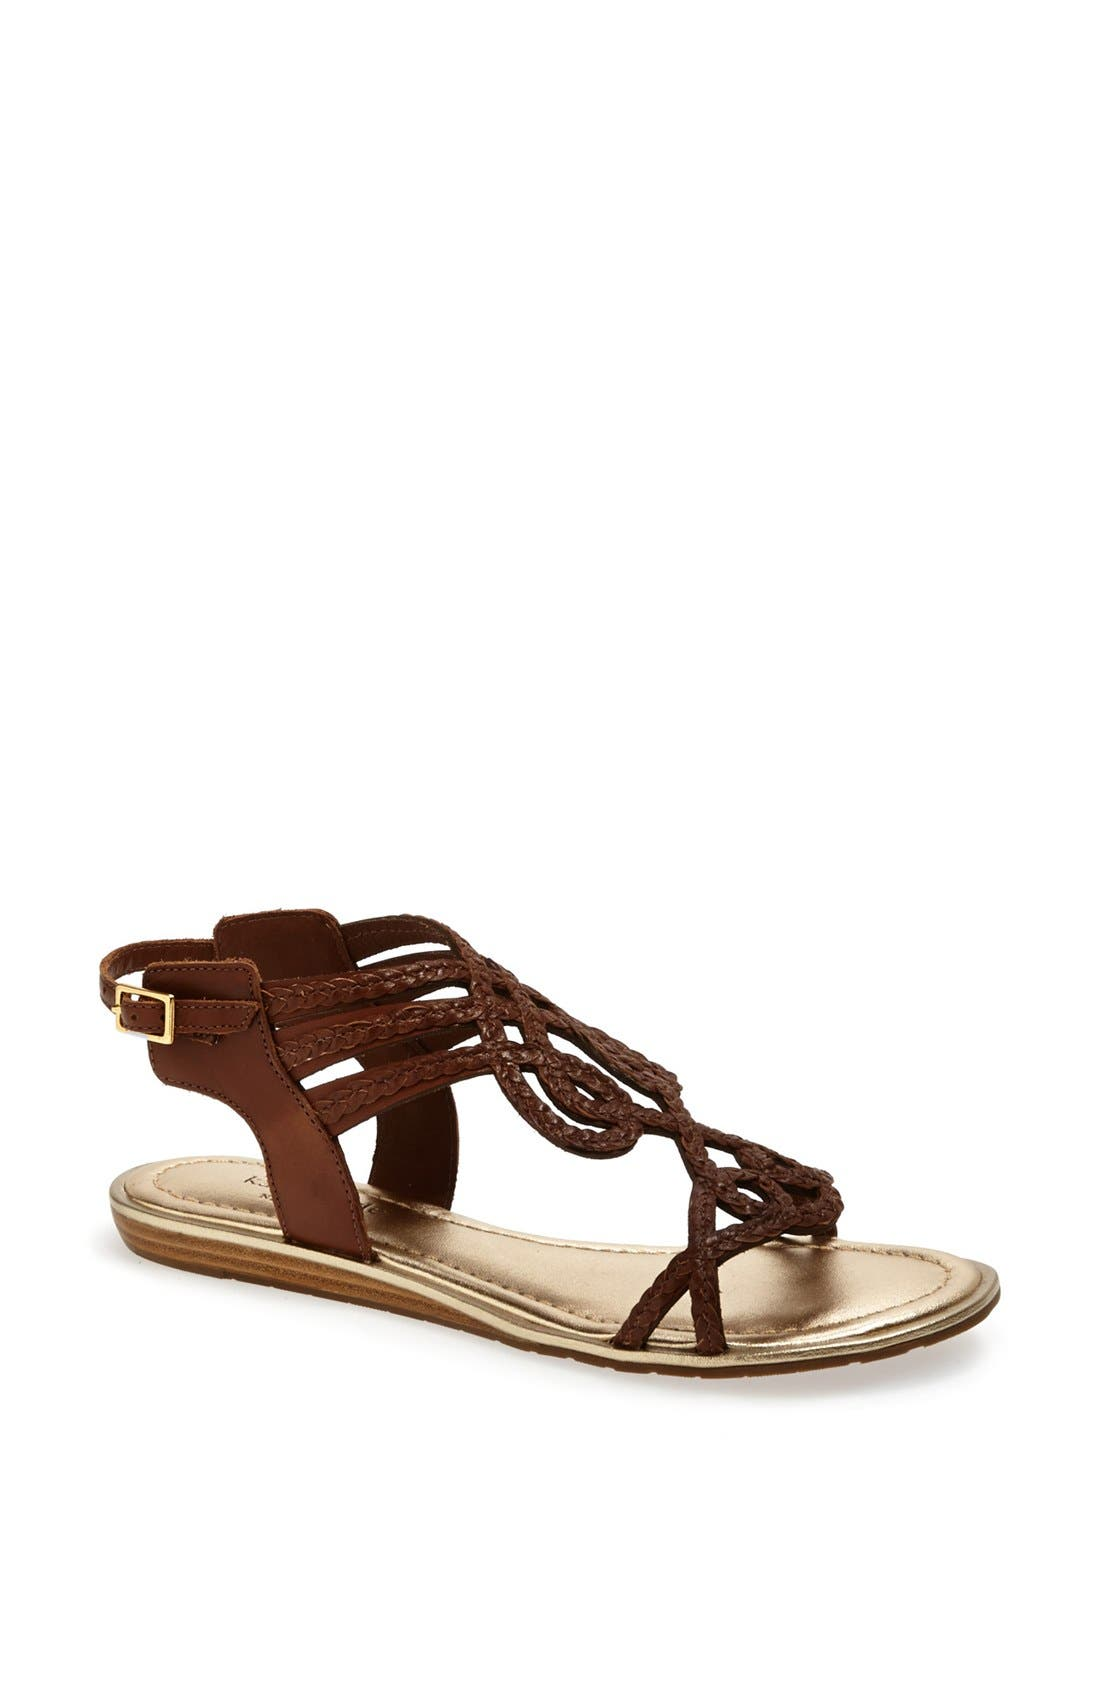 Alternate Image 1 Selected - kate spade new york 'ayn' sandal